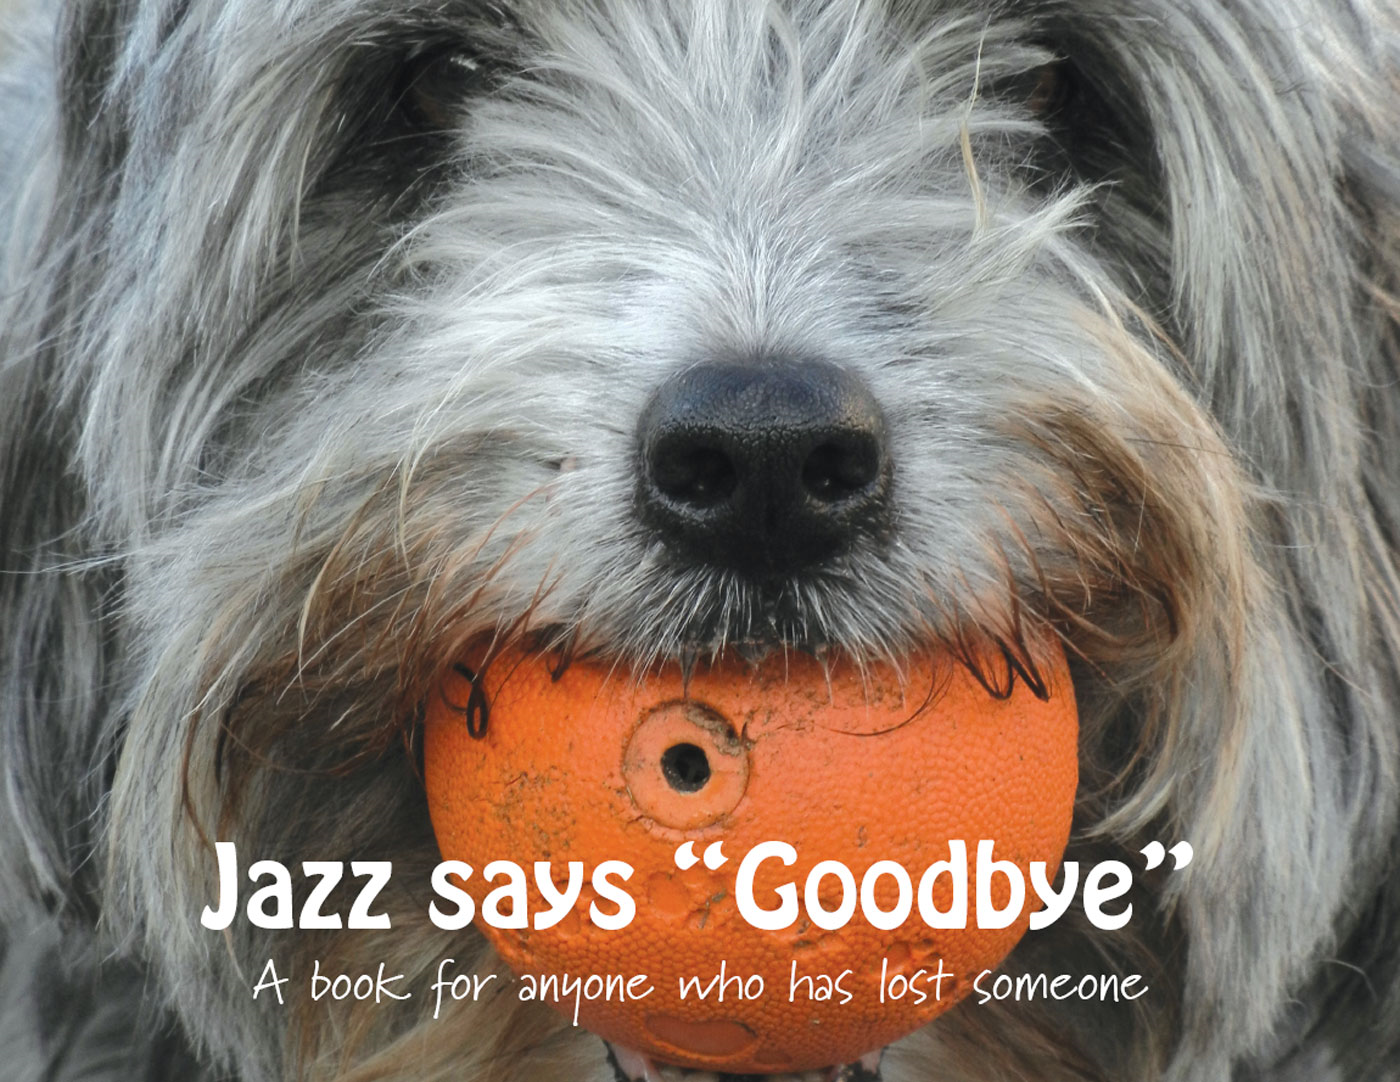 Jazz says Goodbye